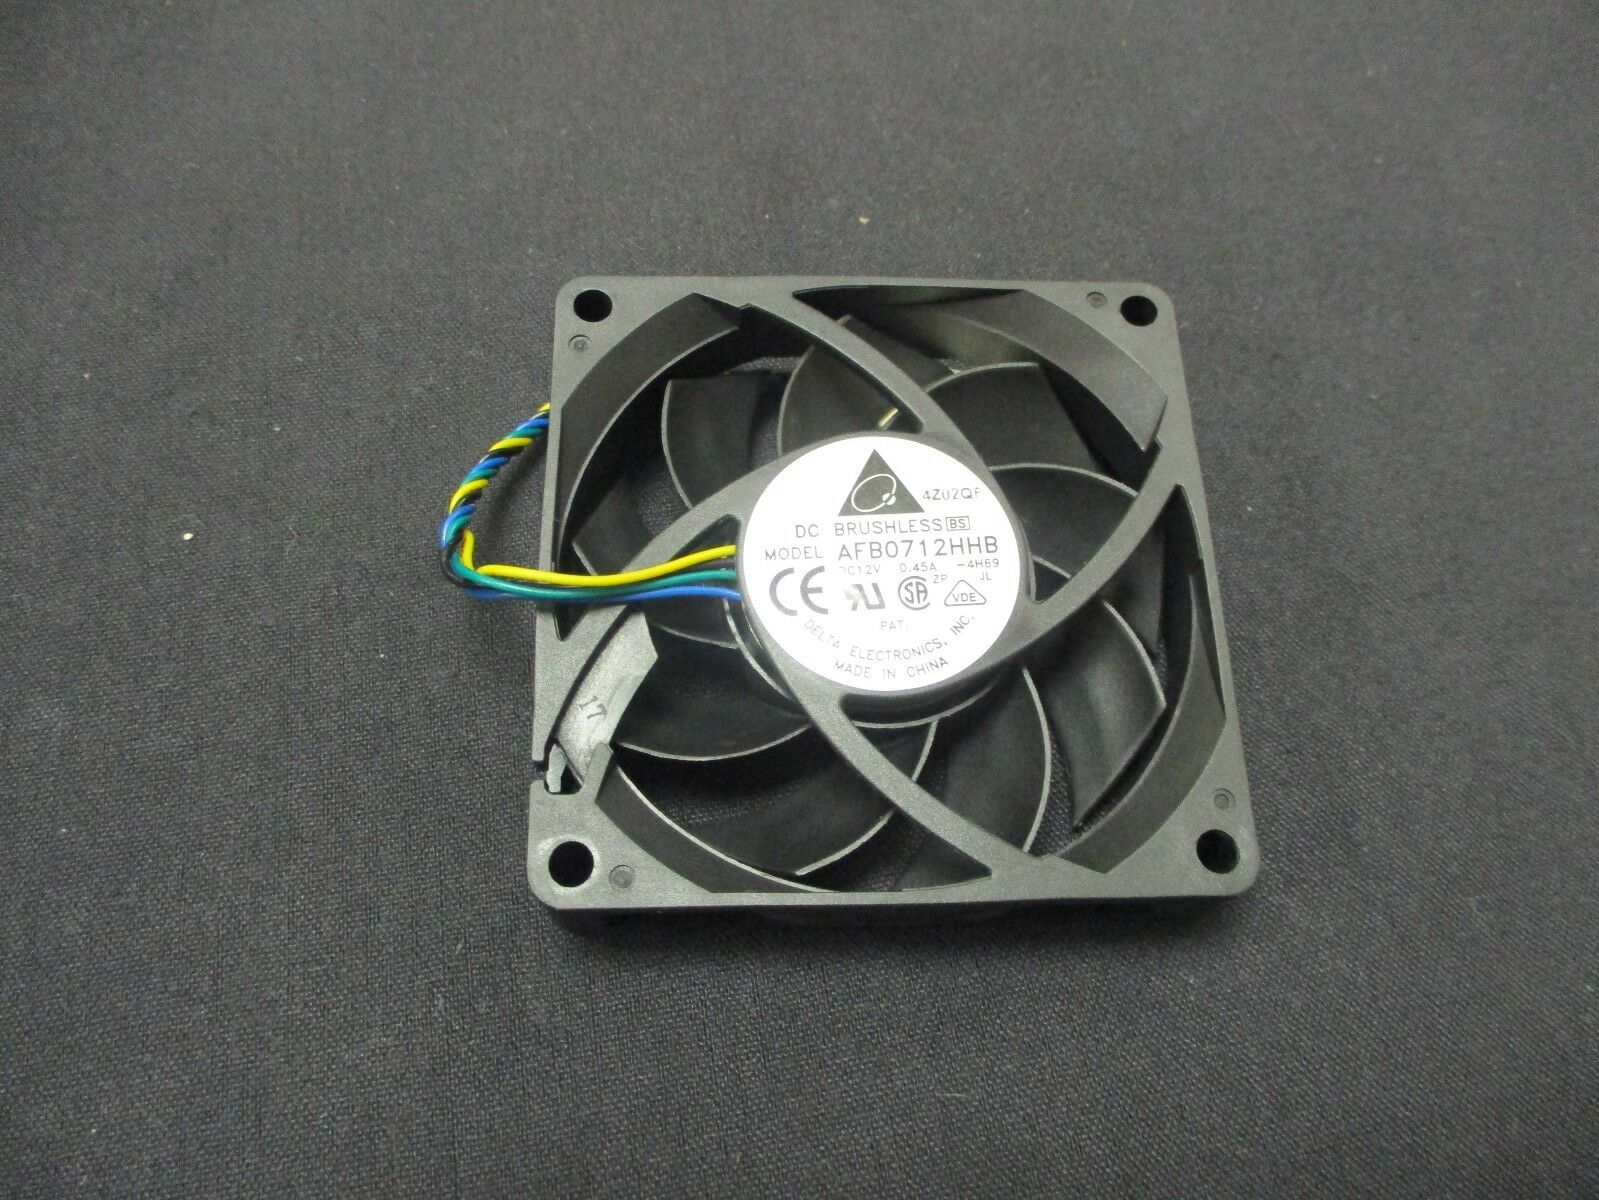 Delta 12v DC 0.45a 70x15mm Fan AFB0712HHB-S57V HP Brushless 3-Wire 4-Pin